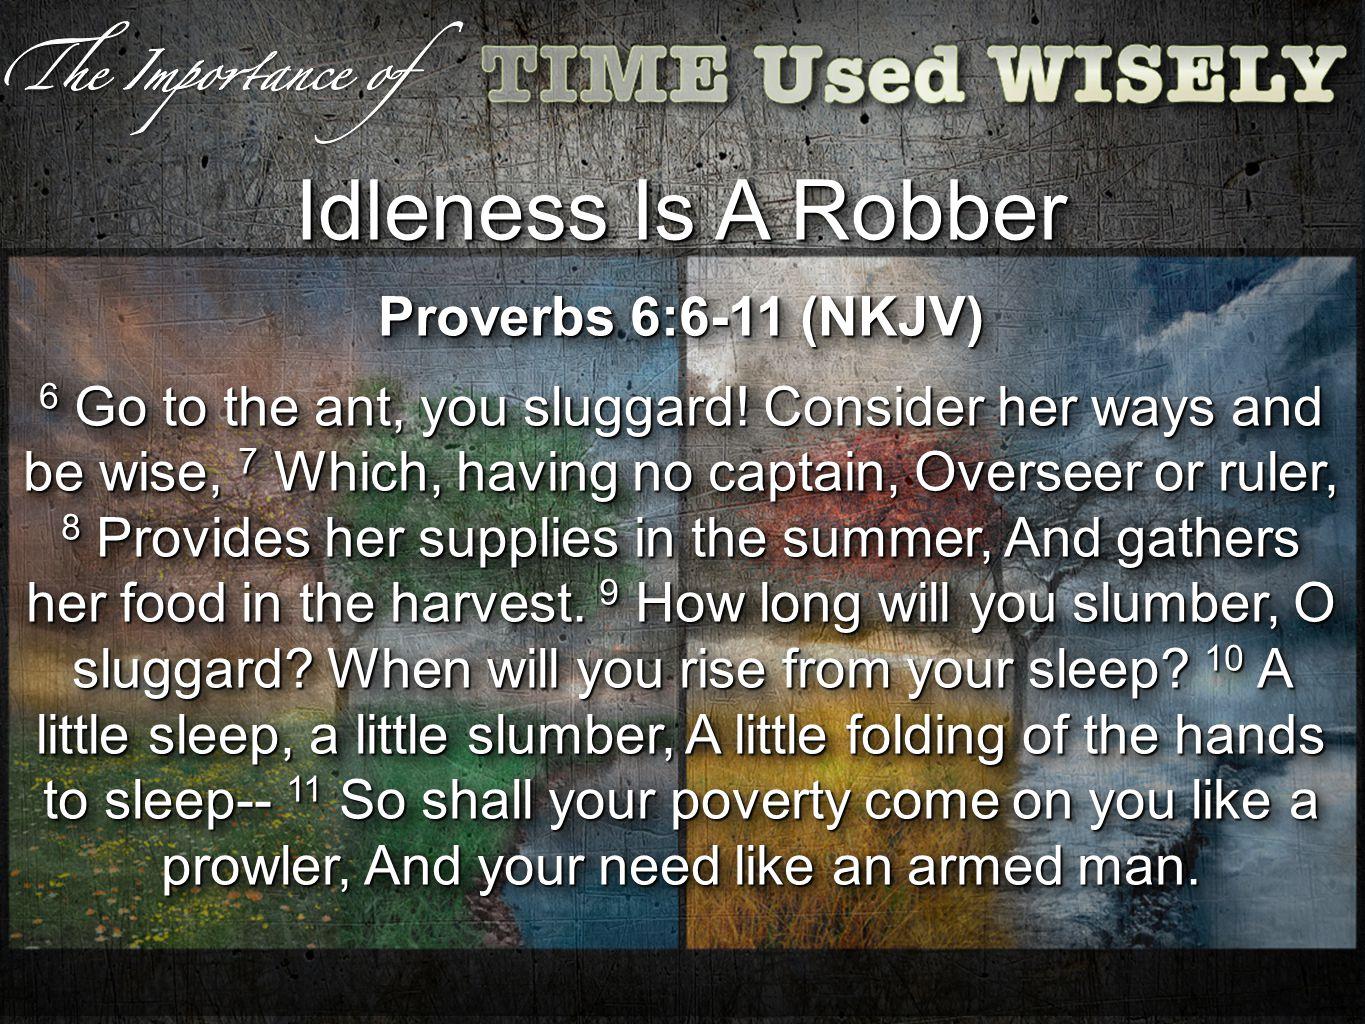 Idleness Is A Robber Proverbs 6:6-11 (NKJV) 6 Go to the ant, you sluggard.